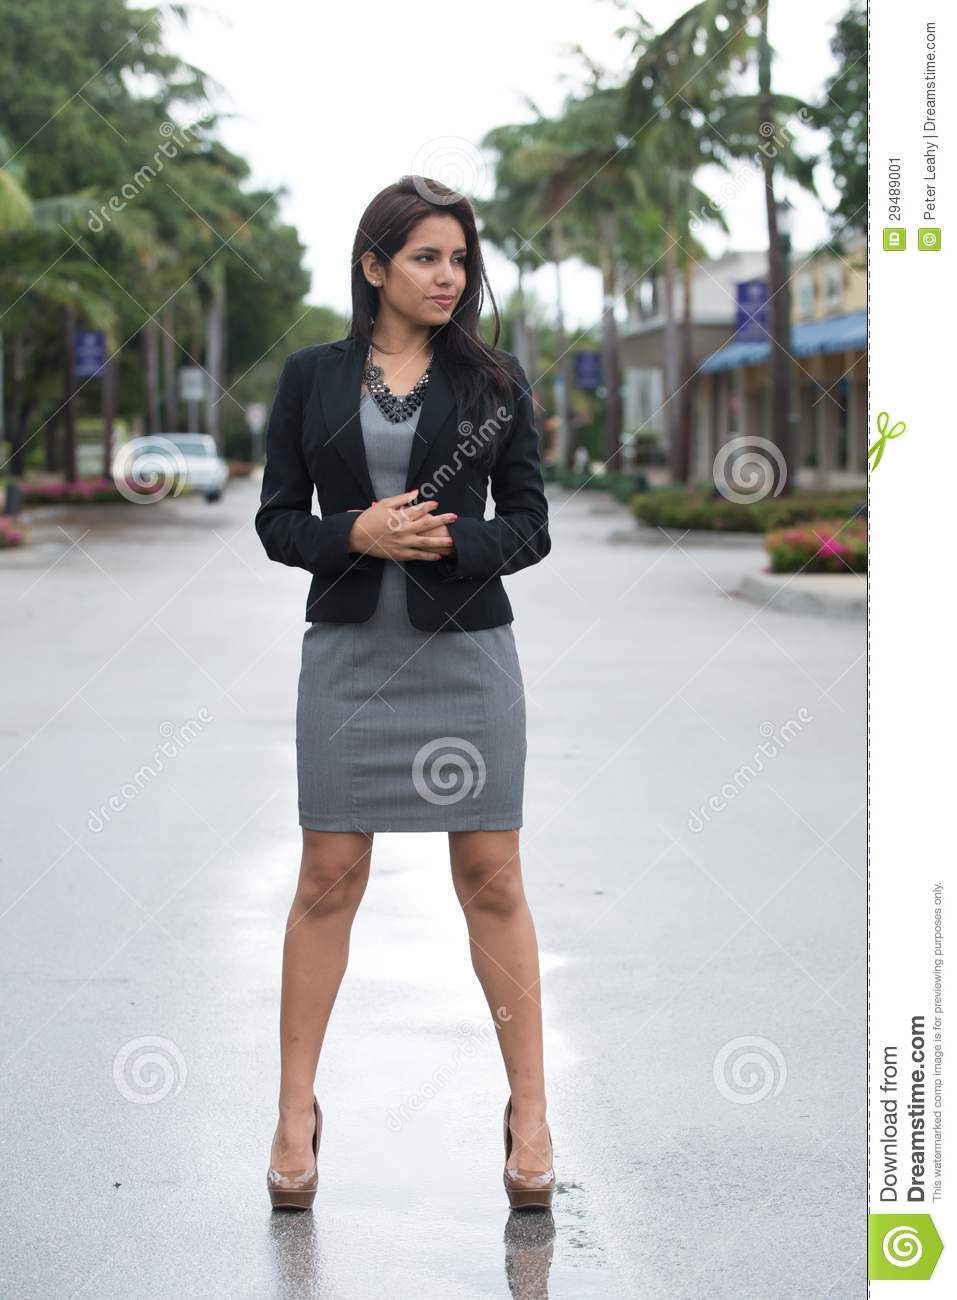 Pretty Woman In Black Jacket And Gray Dress. Stock Image - Image ...